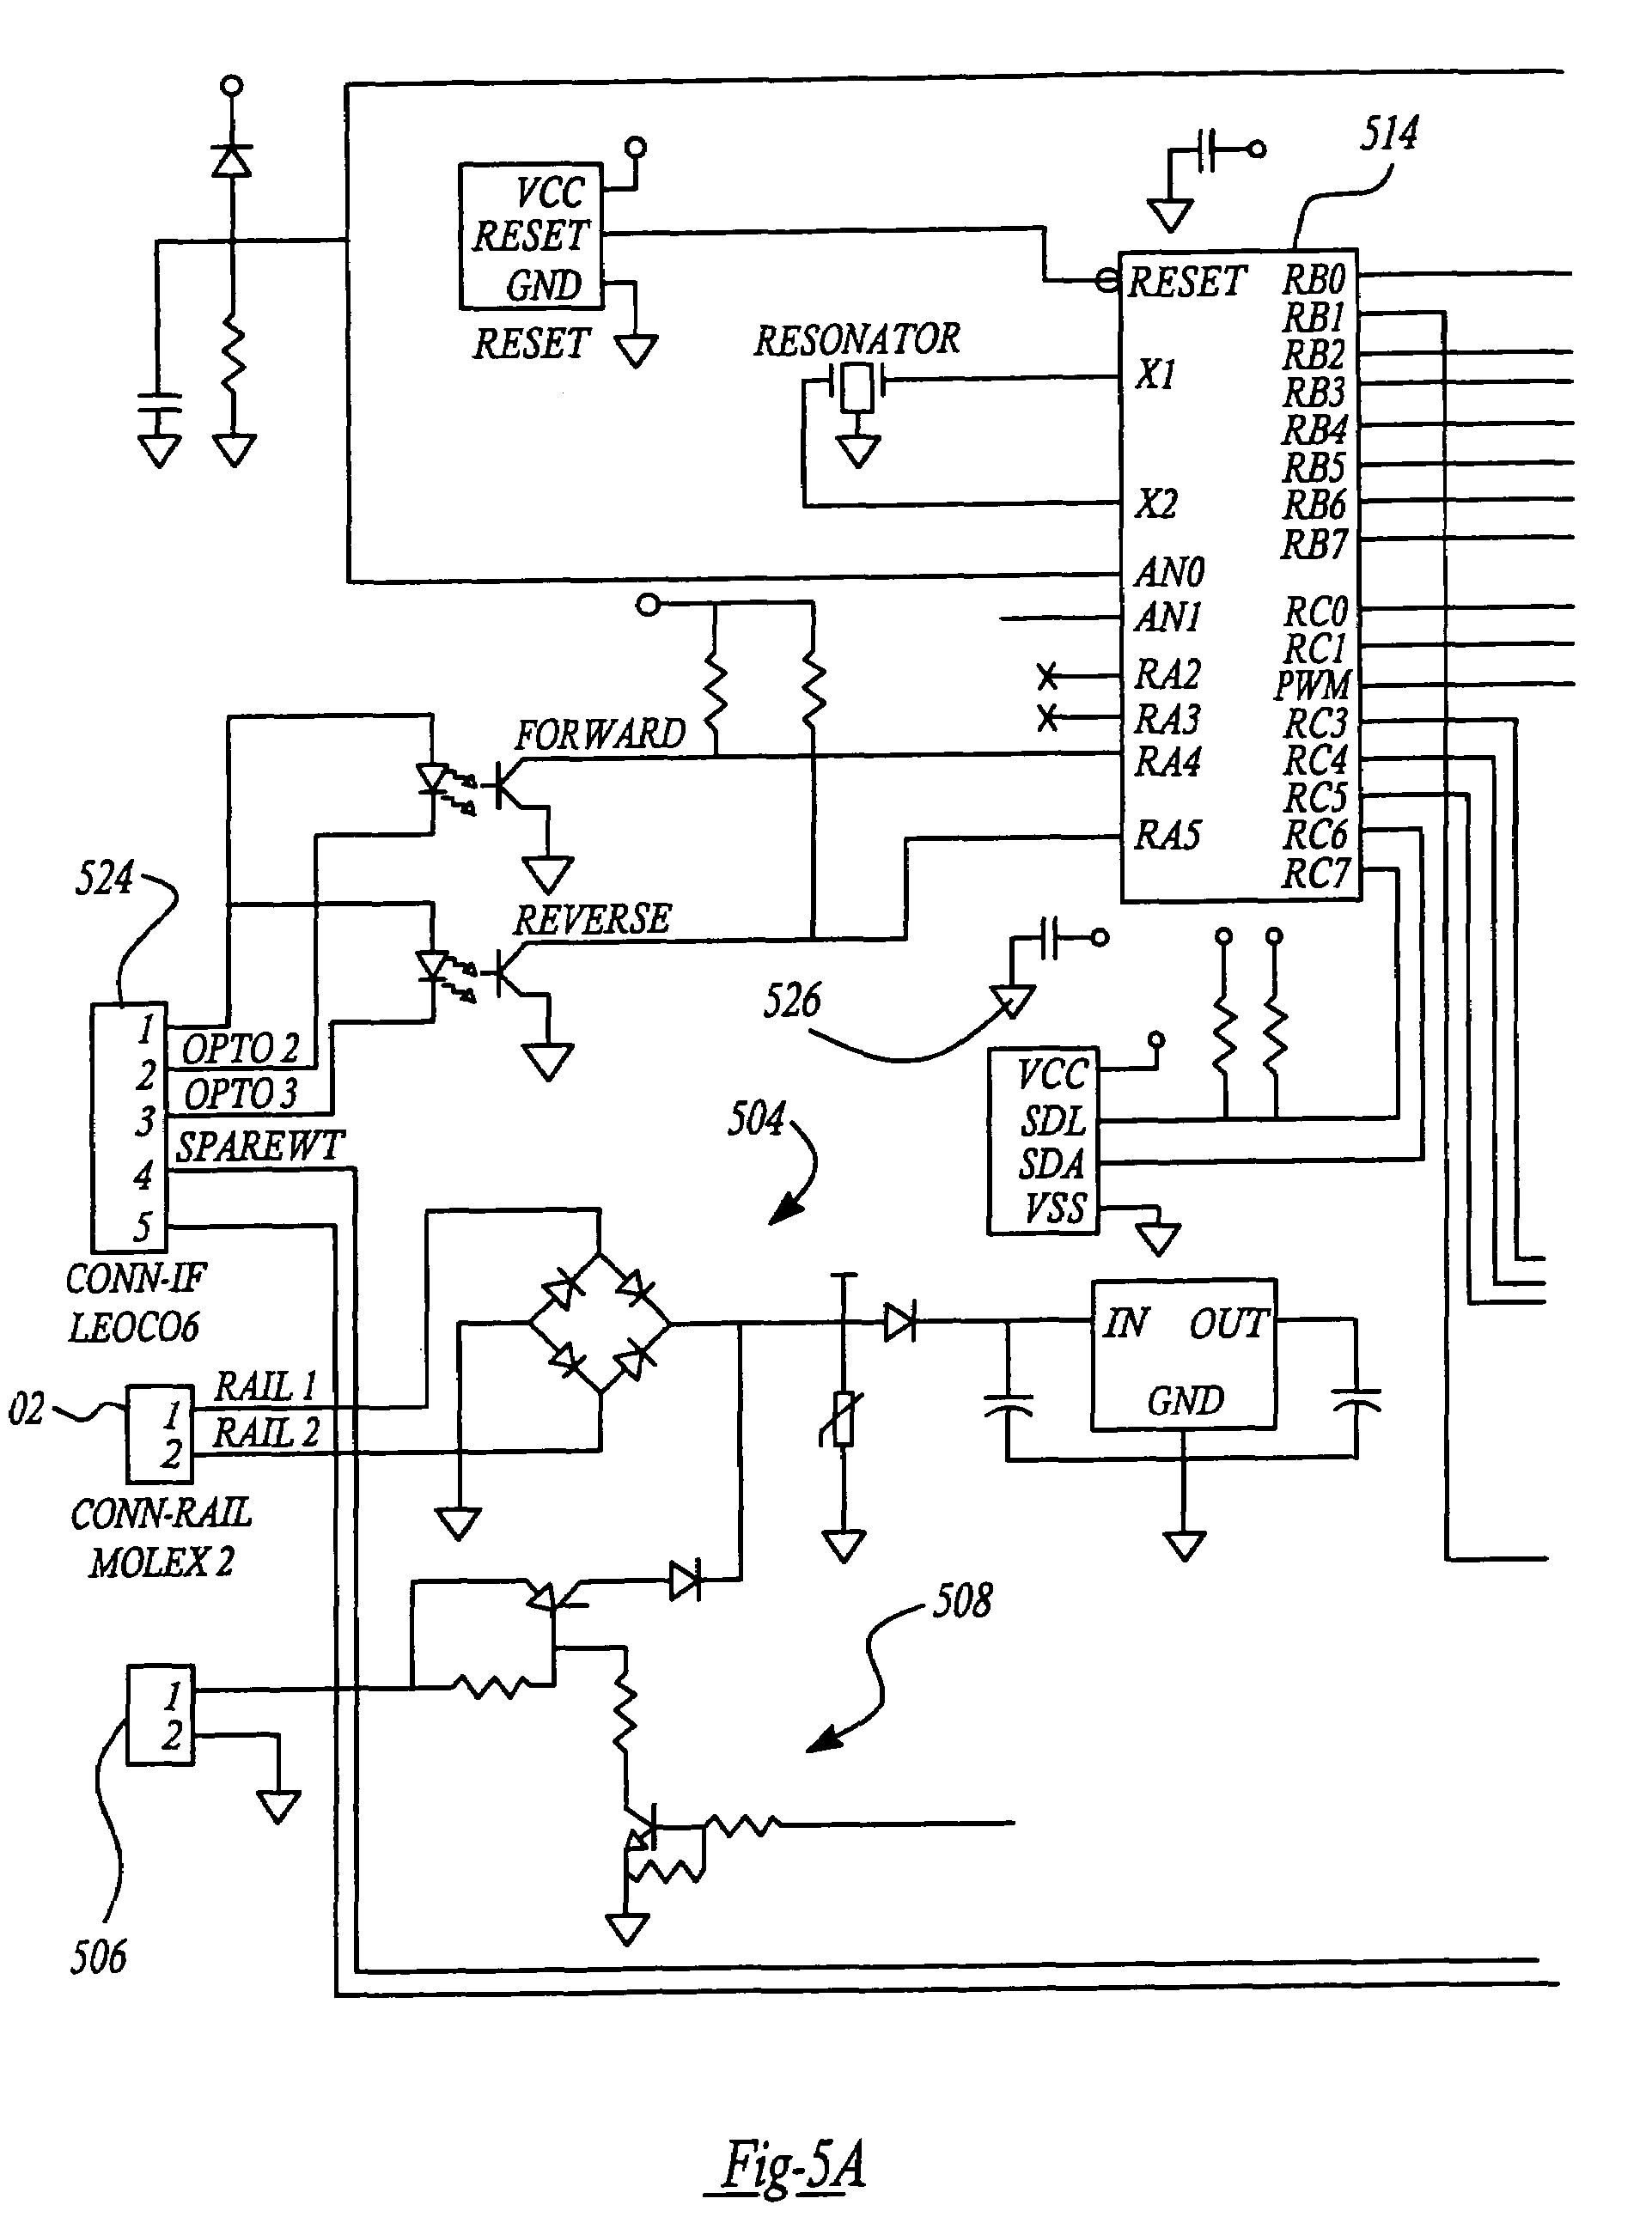 Yamaha Dt 125 Cdi Wiring And Circuit Diagram